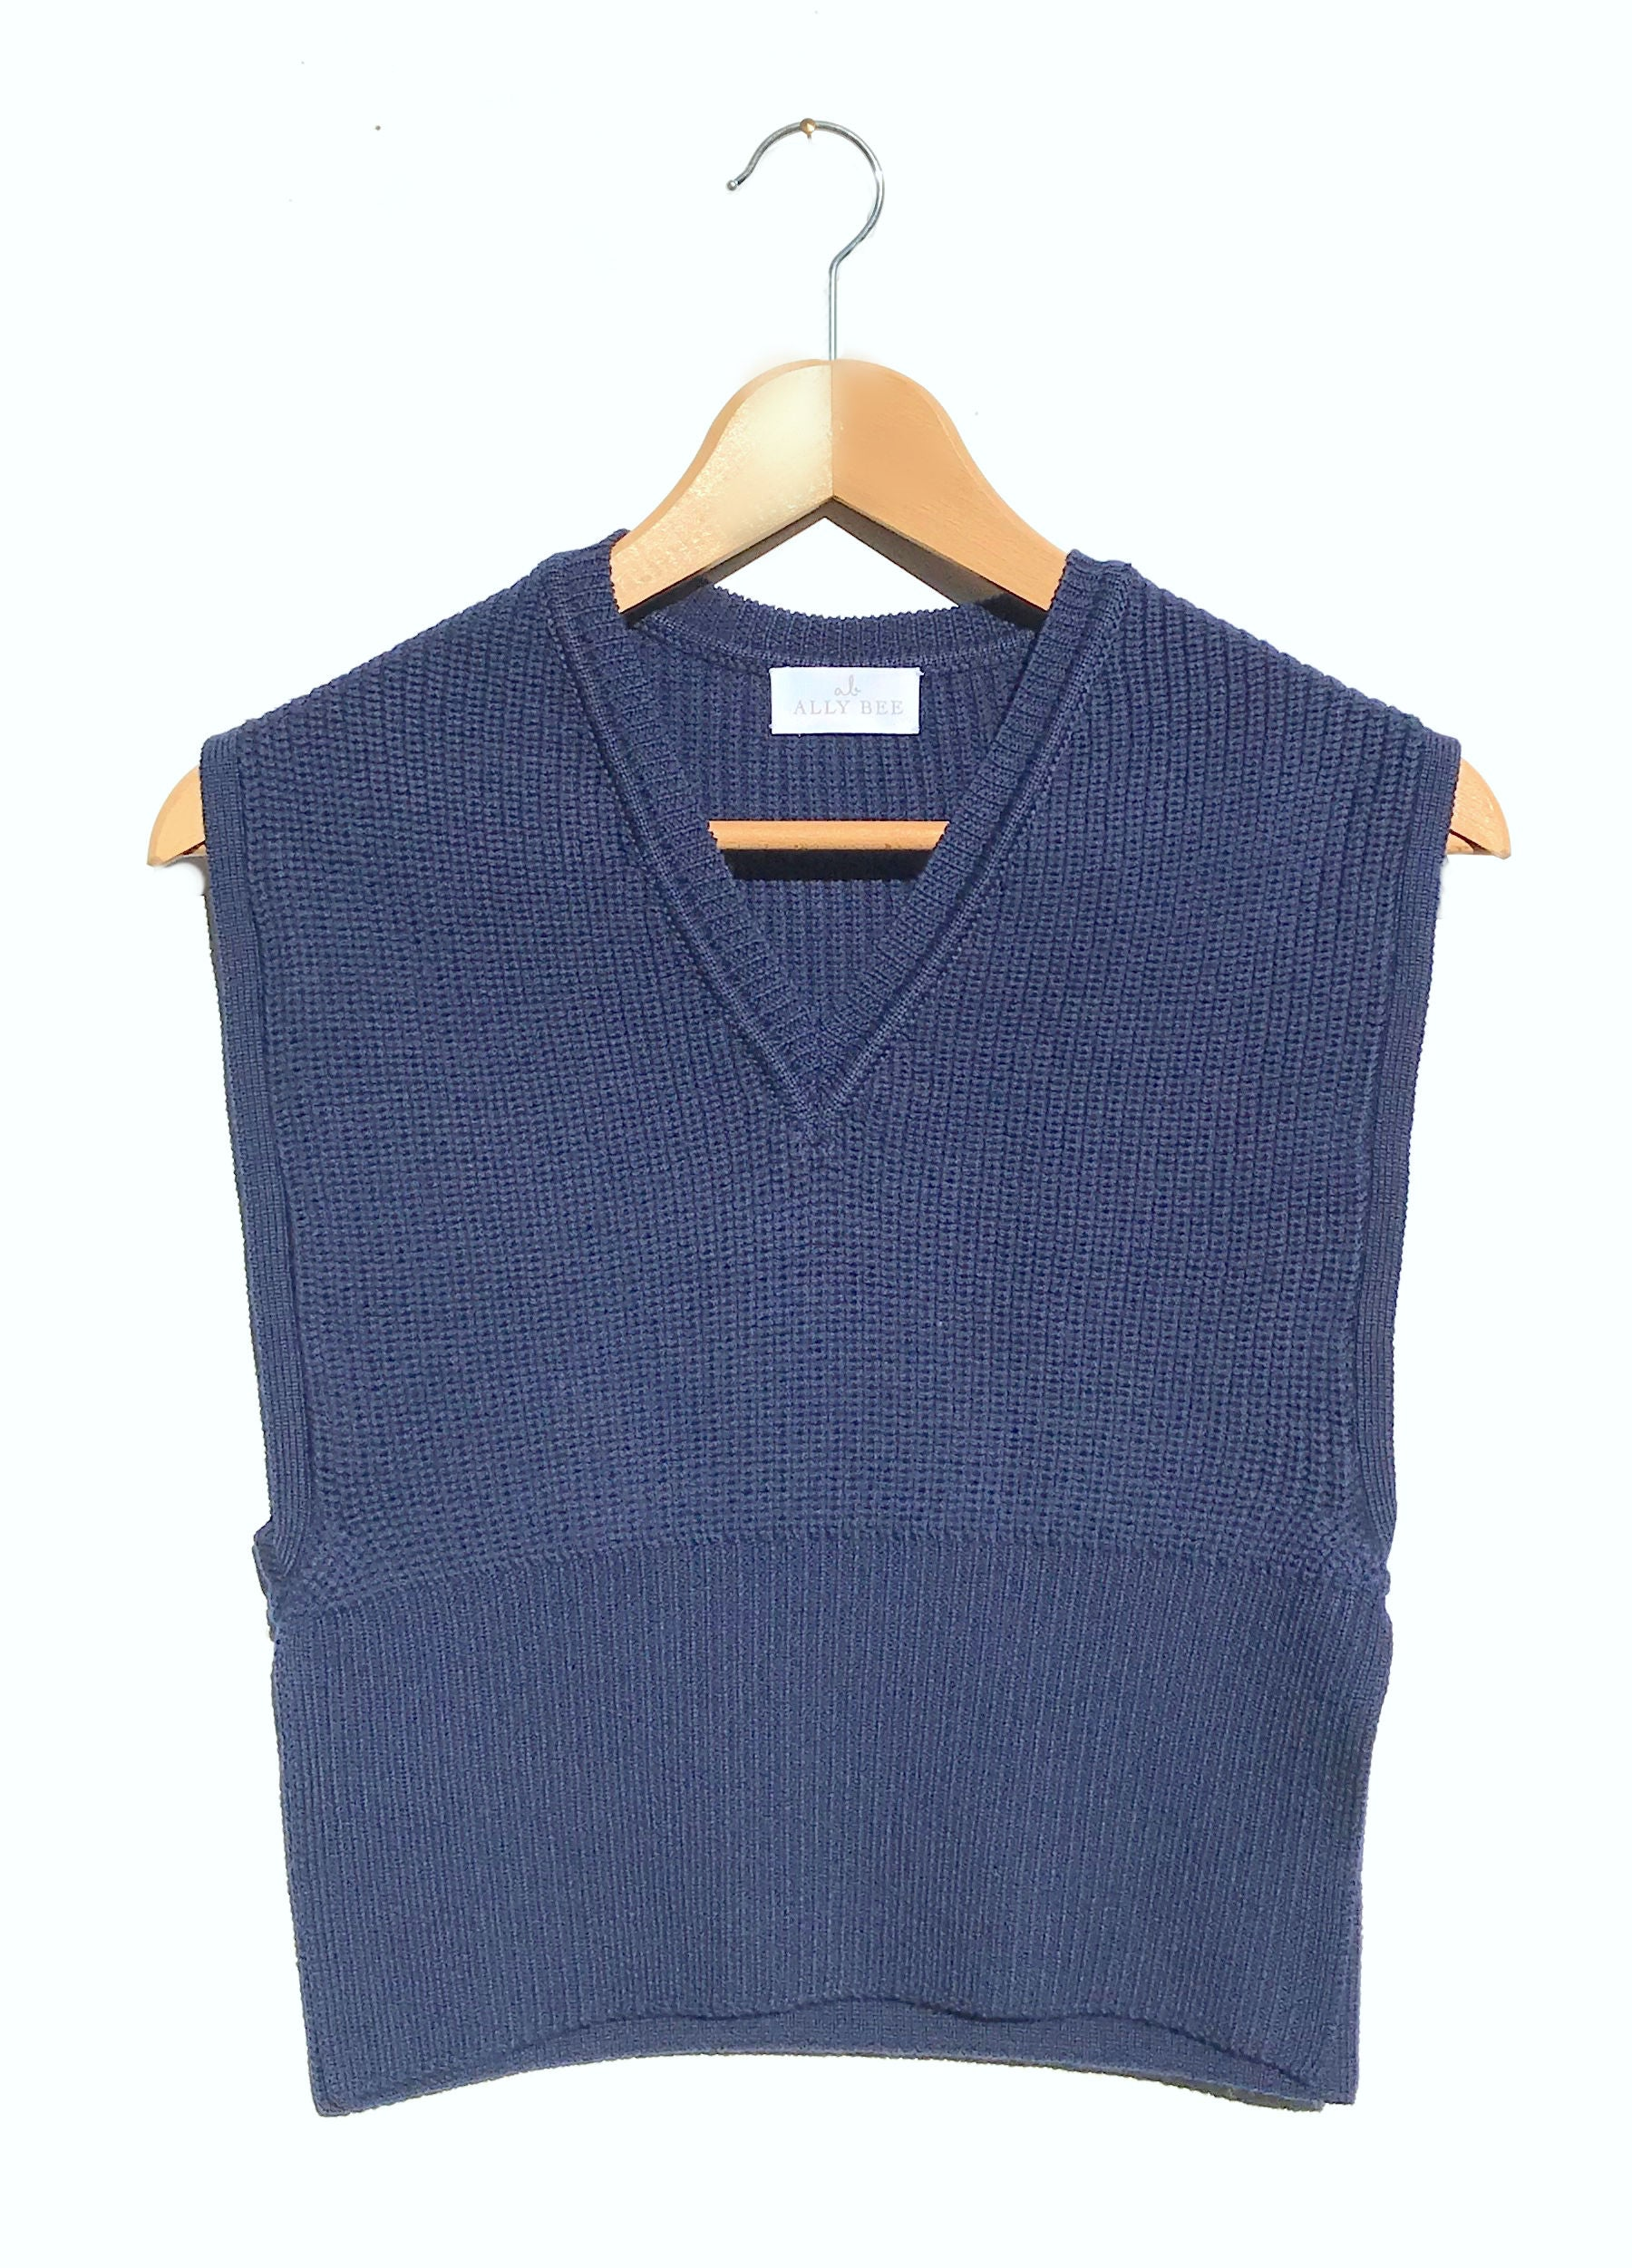 V Neck jumper in blue superfine merino by Ally Bee